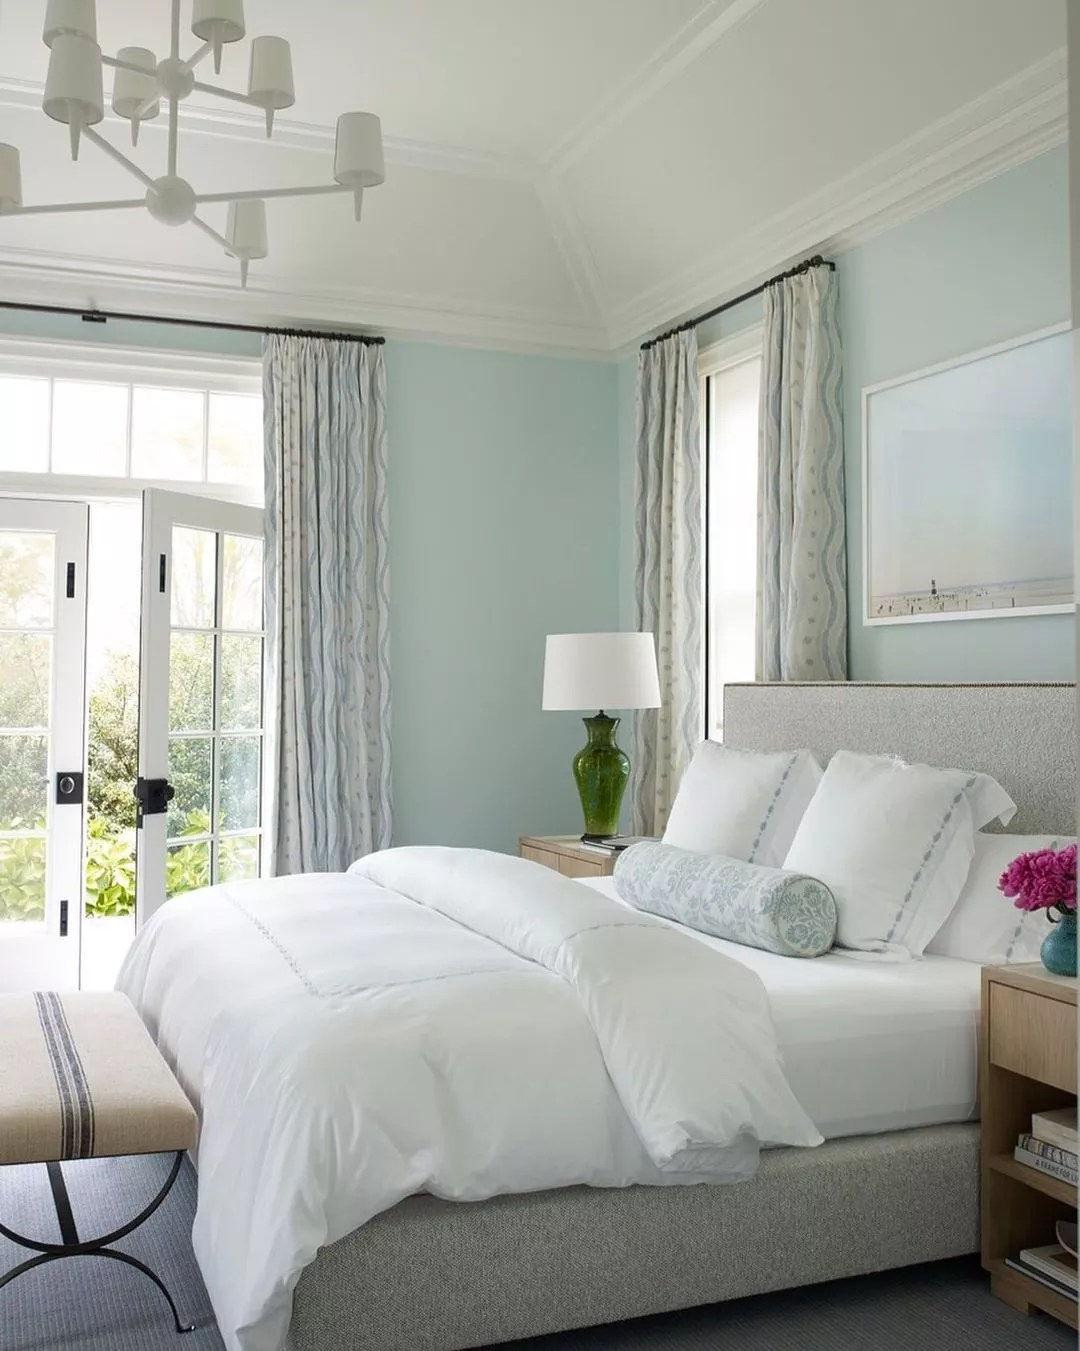 Inviting, white bed in a seafoam-colored bedroom in the Hamptons. Photo by Instagram user @victoriahaganinteriors.